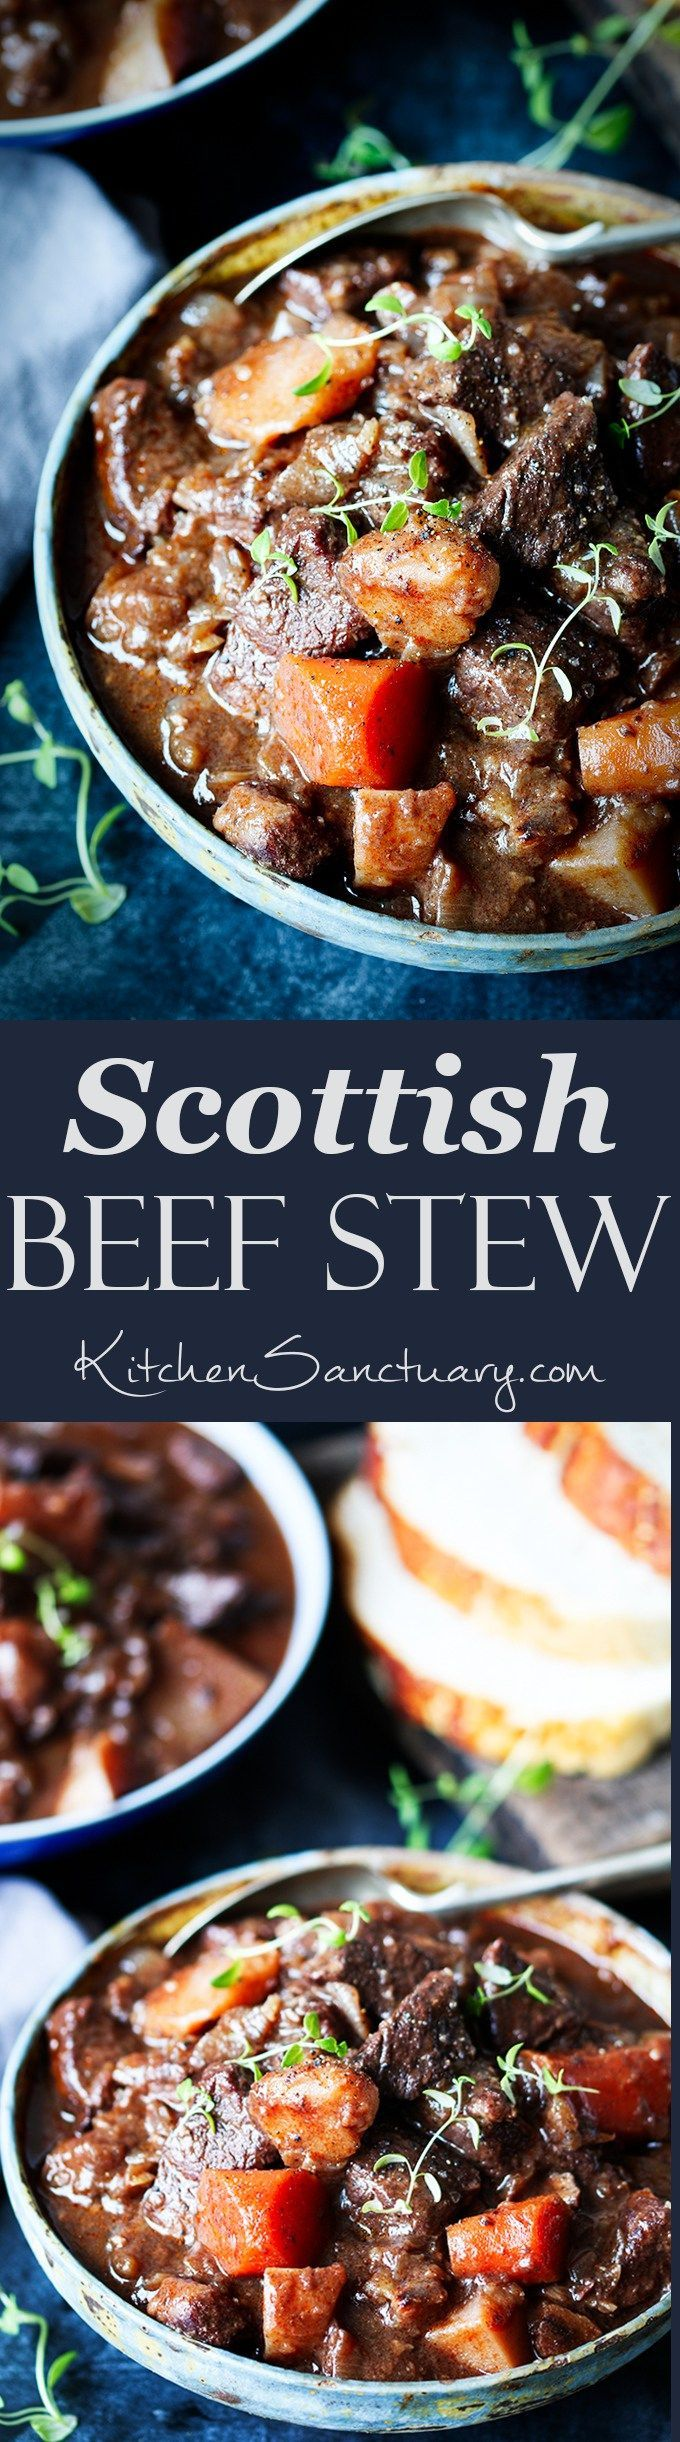 Slow Cooked Scottish Beef Stew - Cooked in the oven or crockpot.